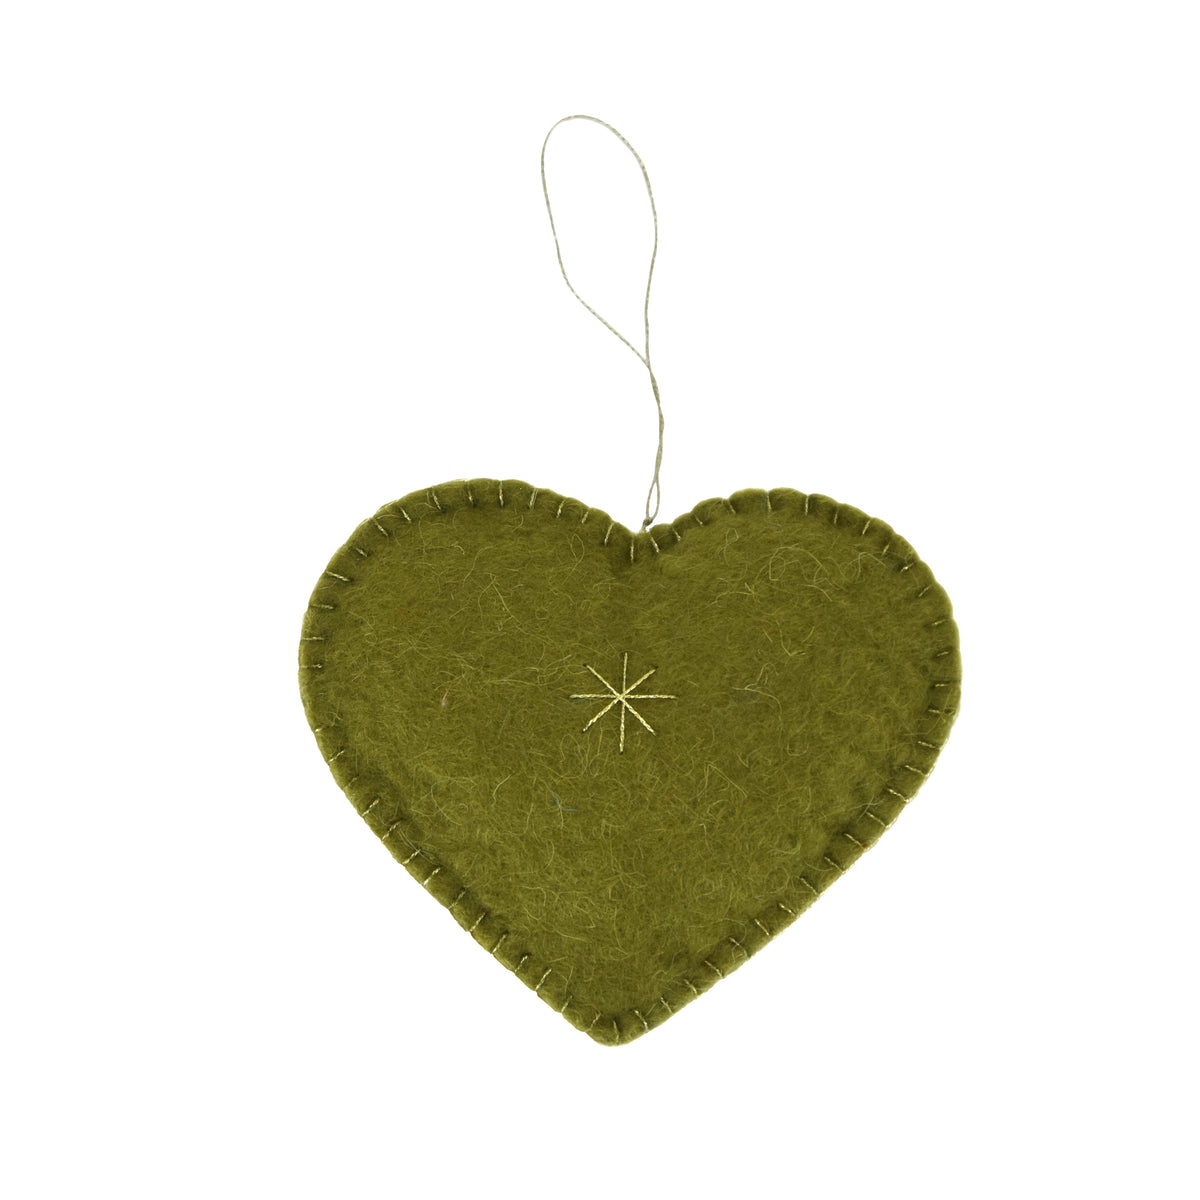 Heart Felted Ornament - Olive